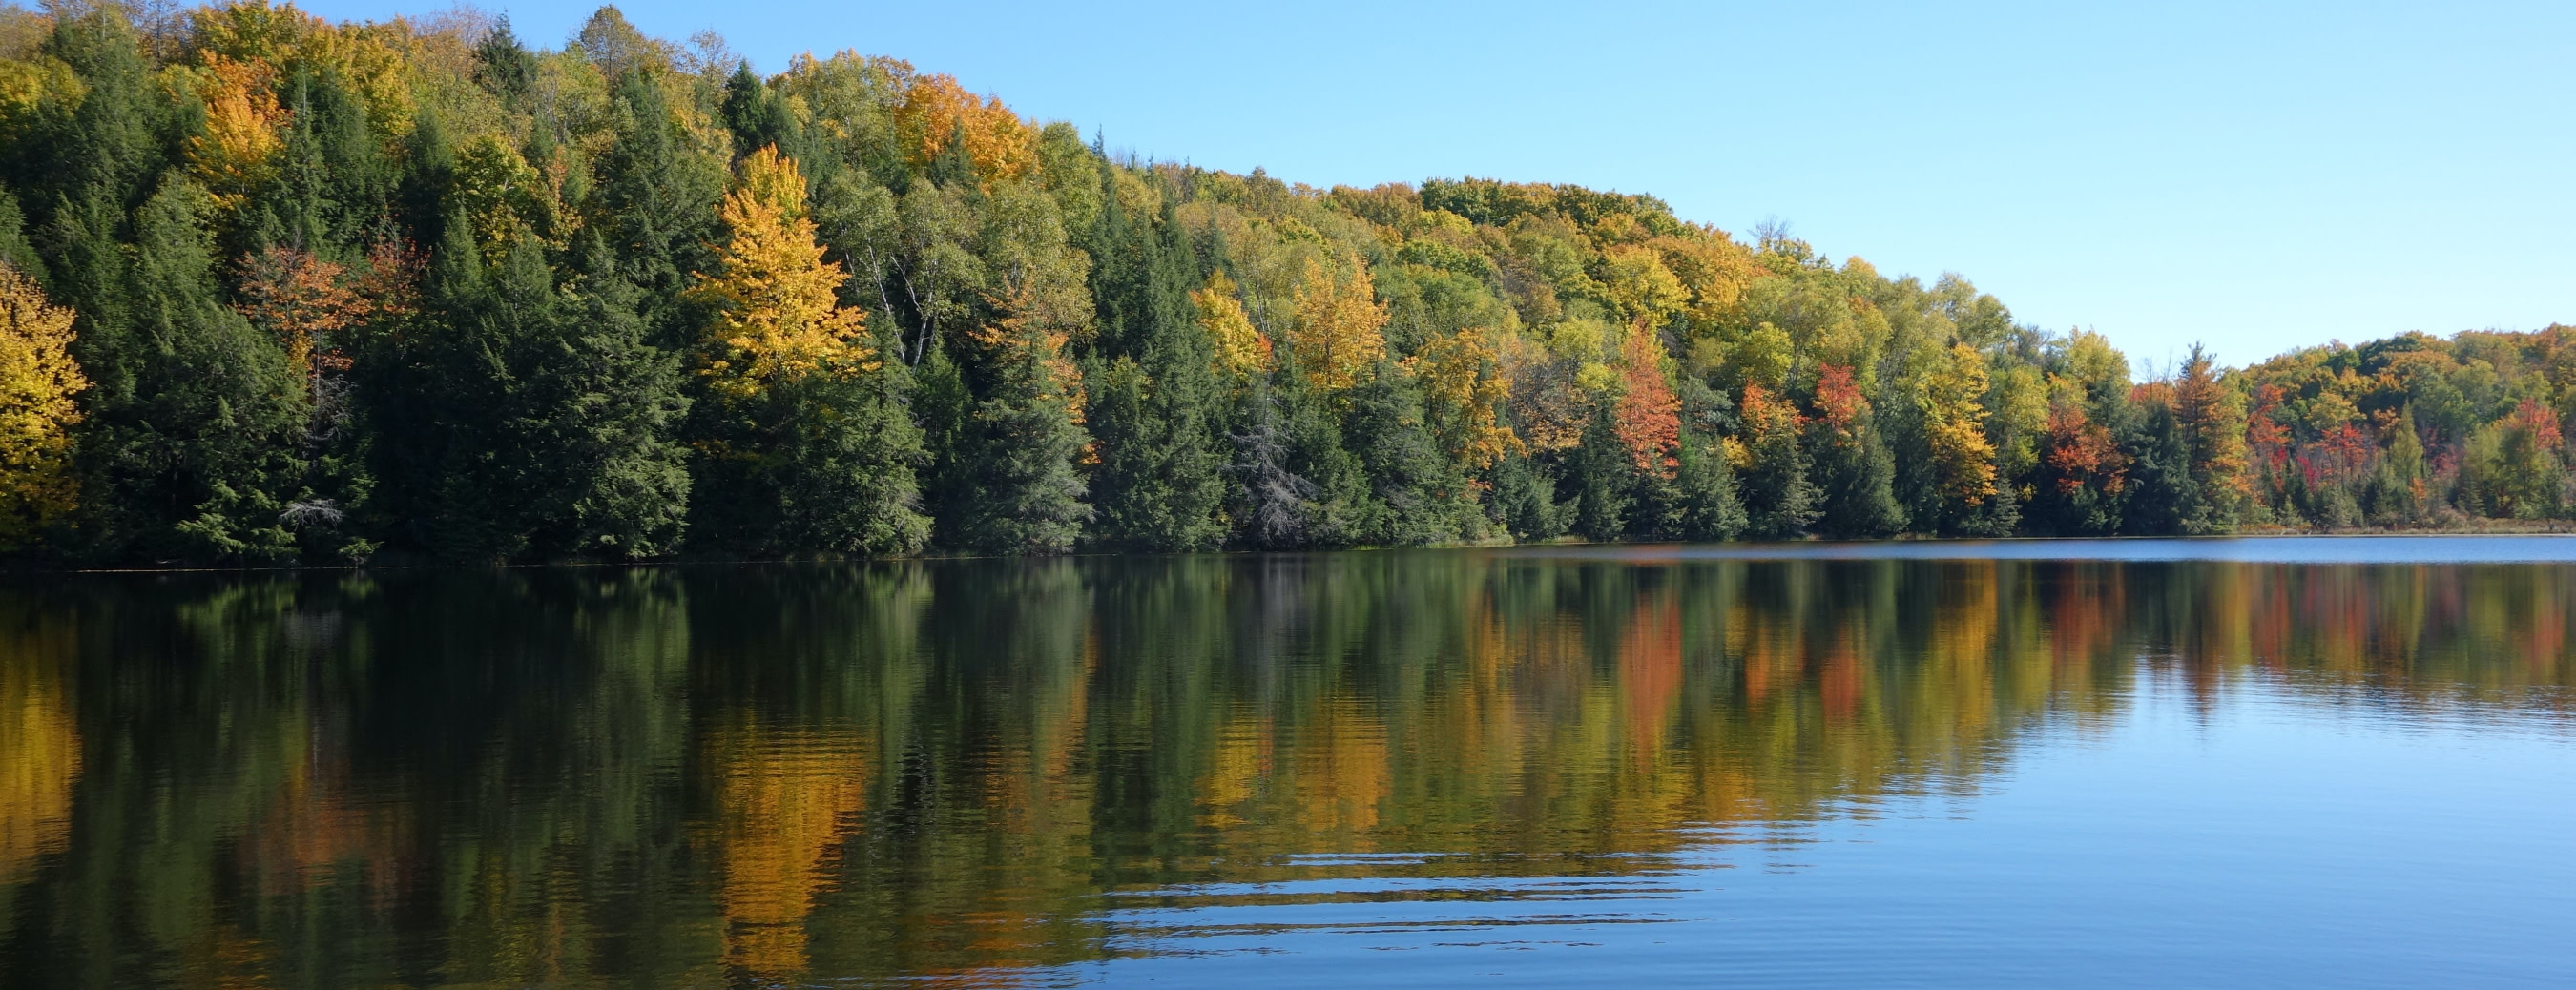 09.27.2020 - calm lake water with fall foliage representing calm before the storm